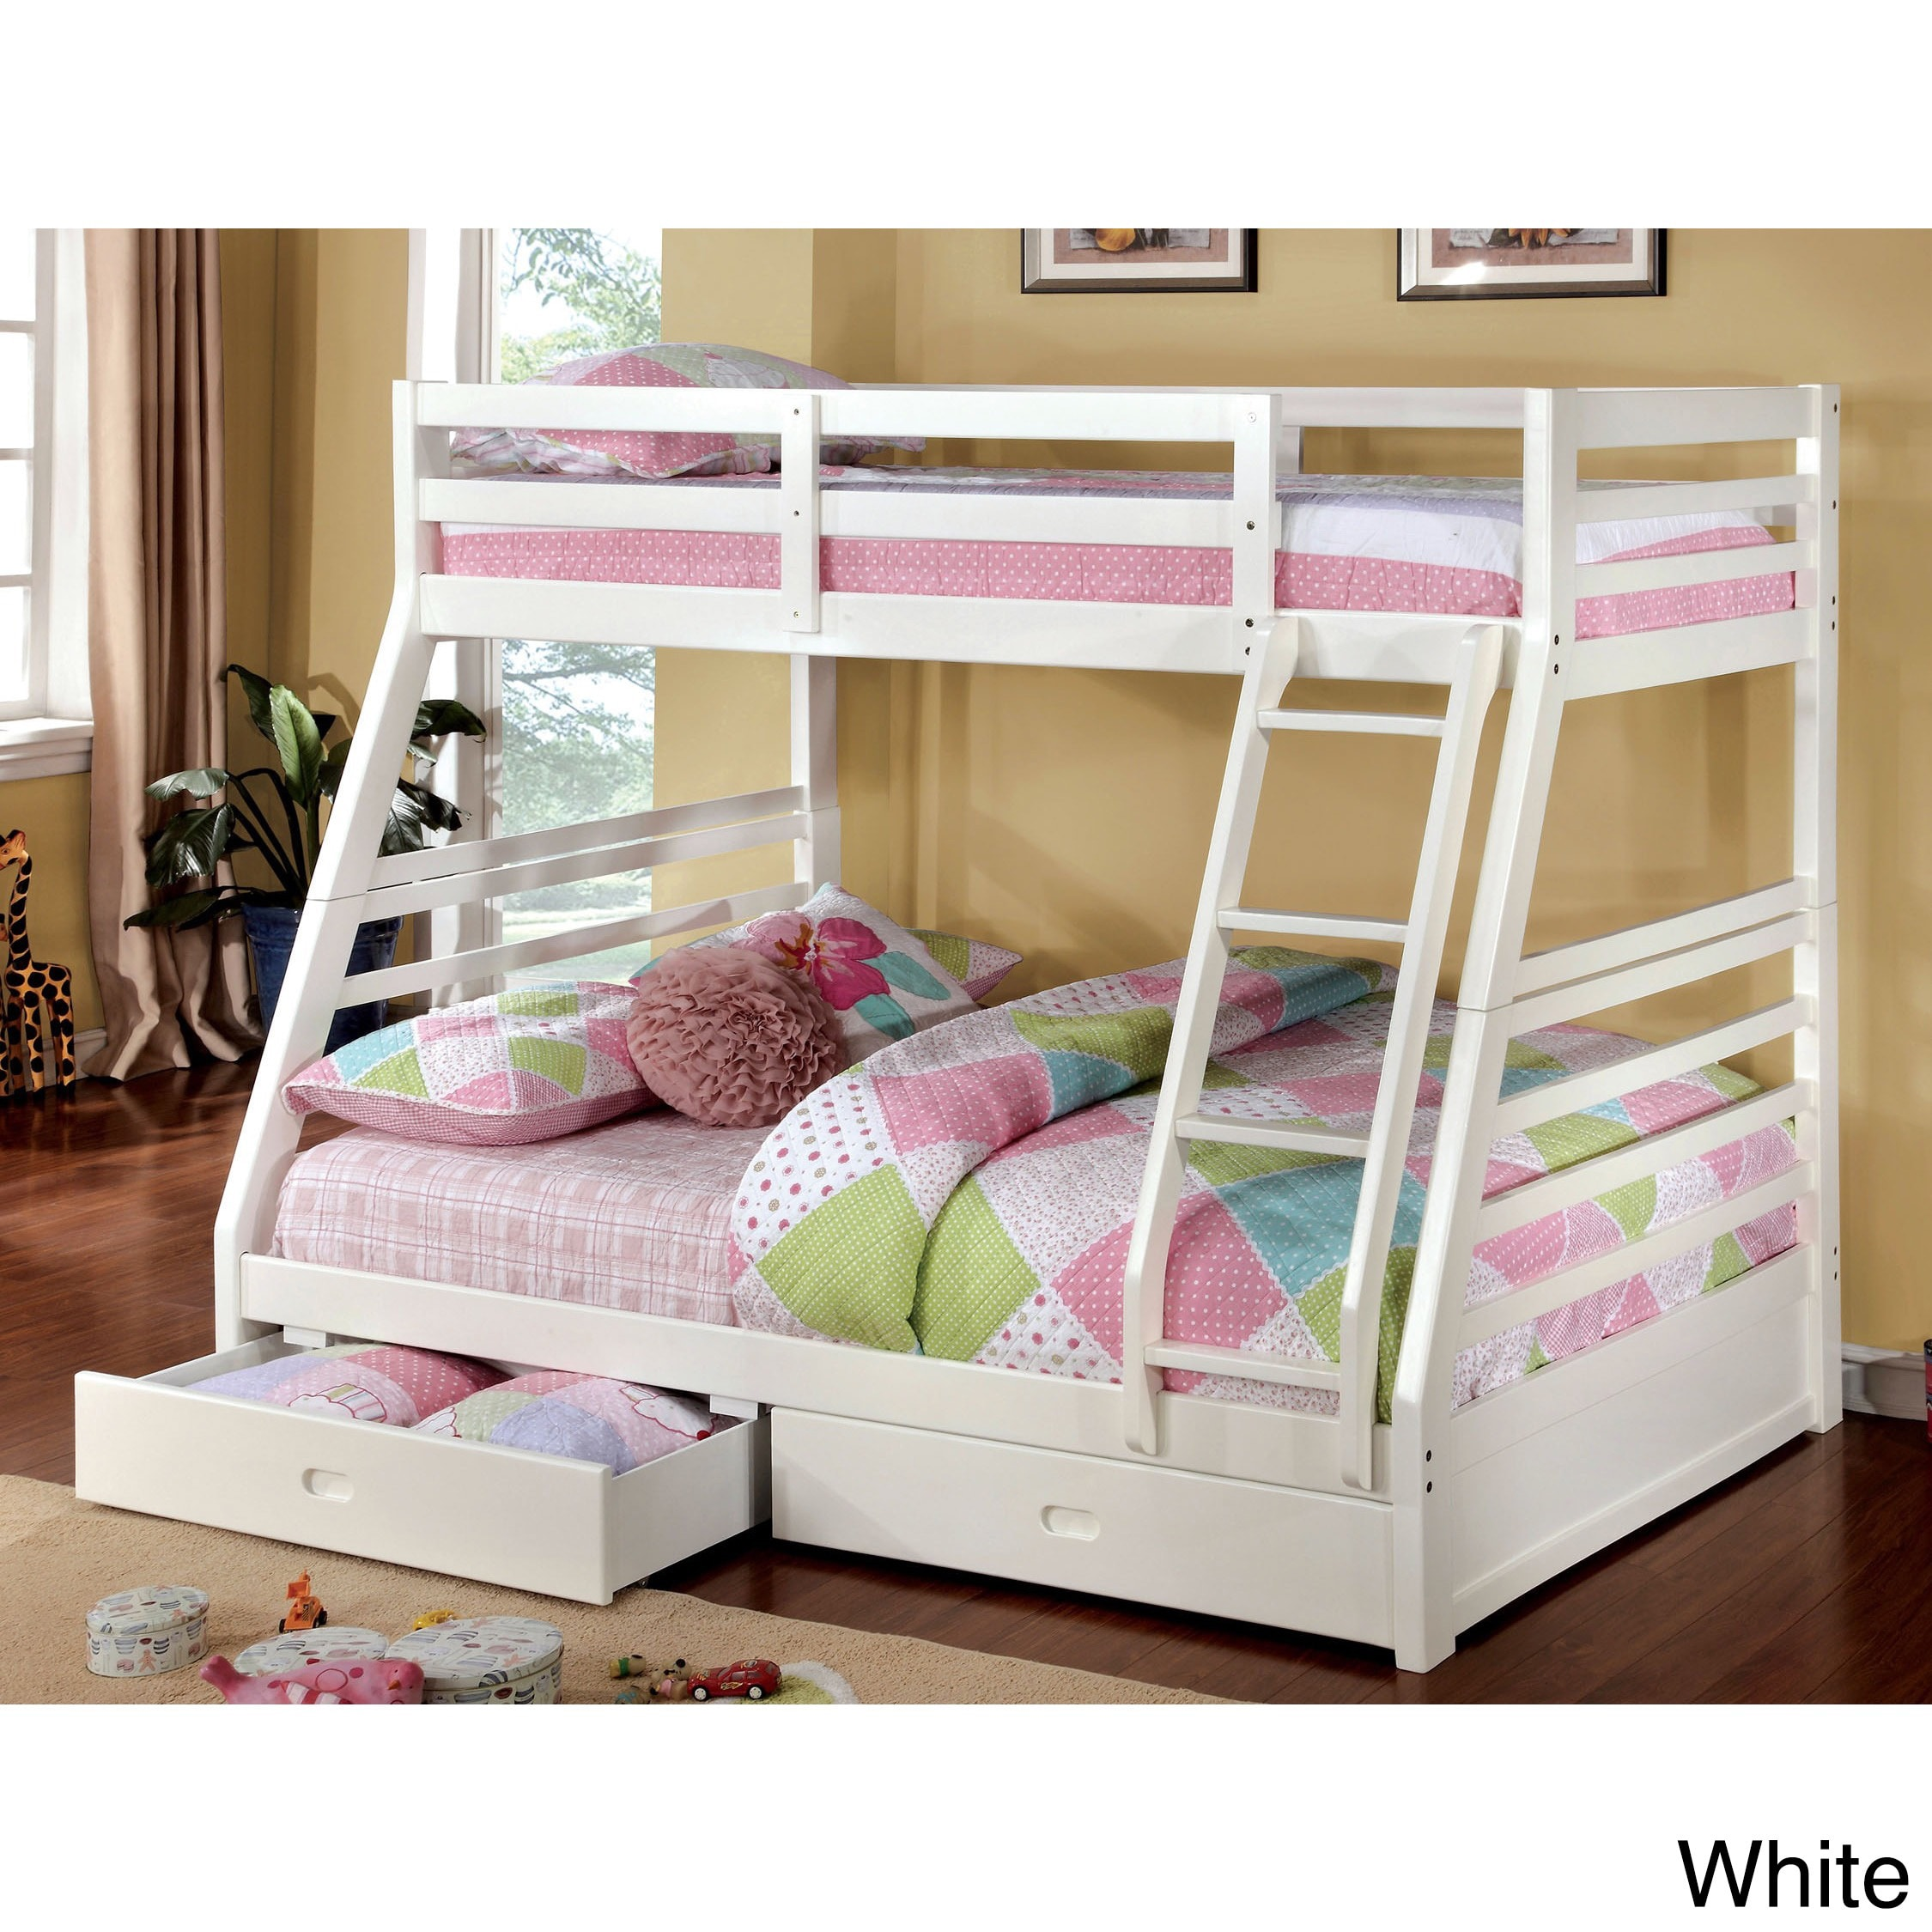 Furniture Of America Junior Roomates Twin Over Full Bunk Bed With 2 Drawers Set